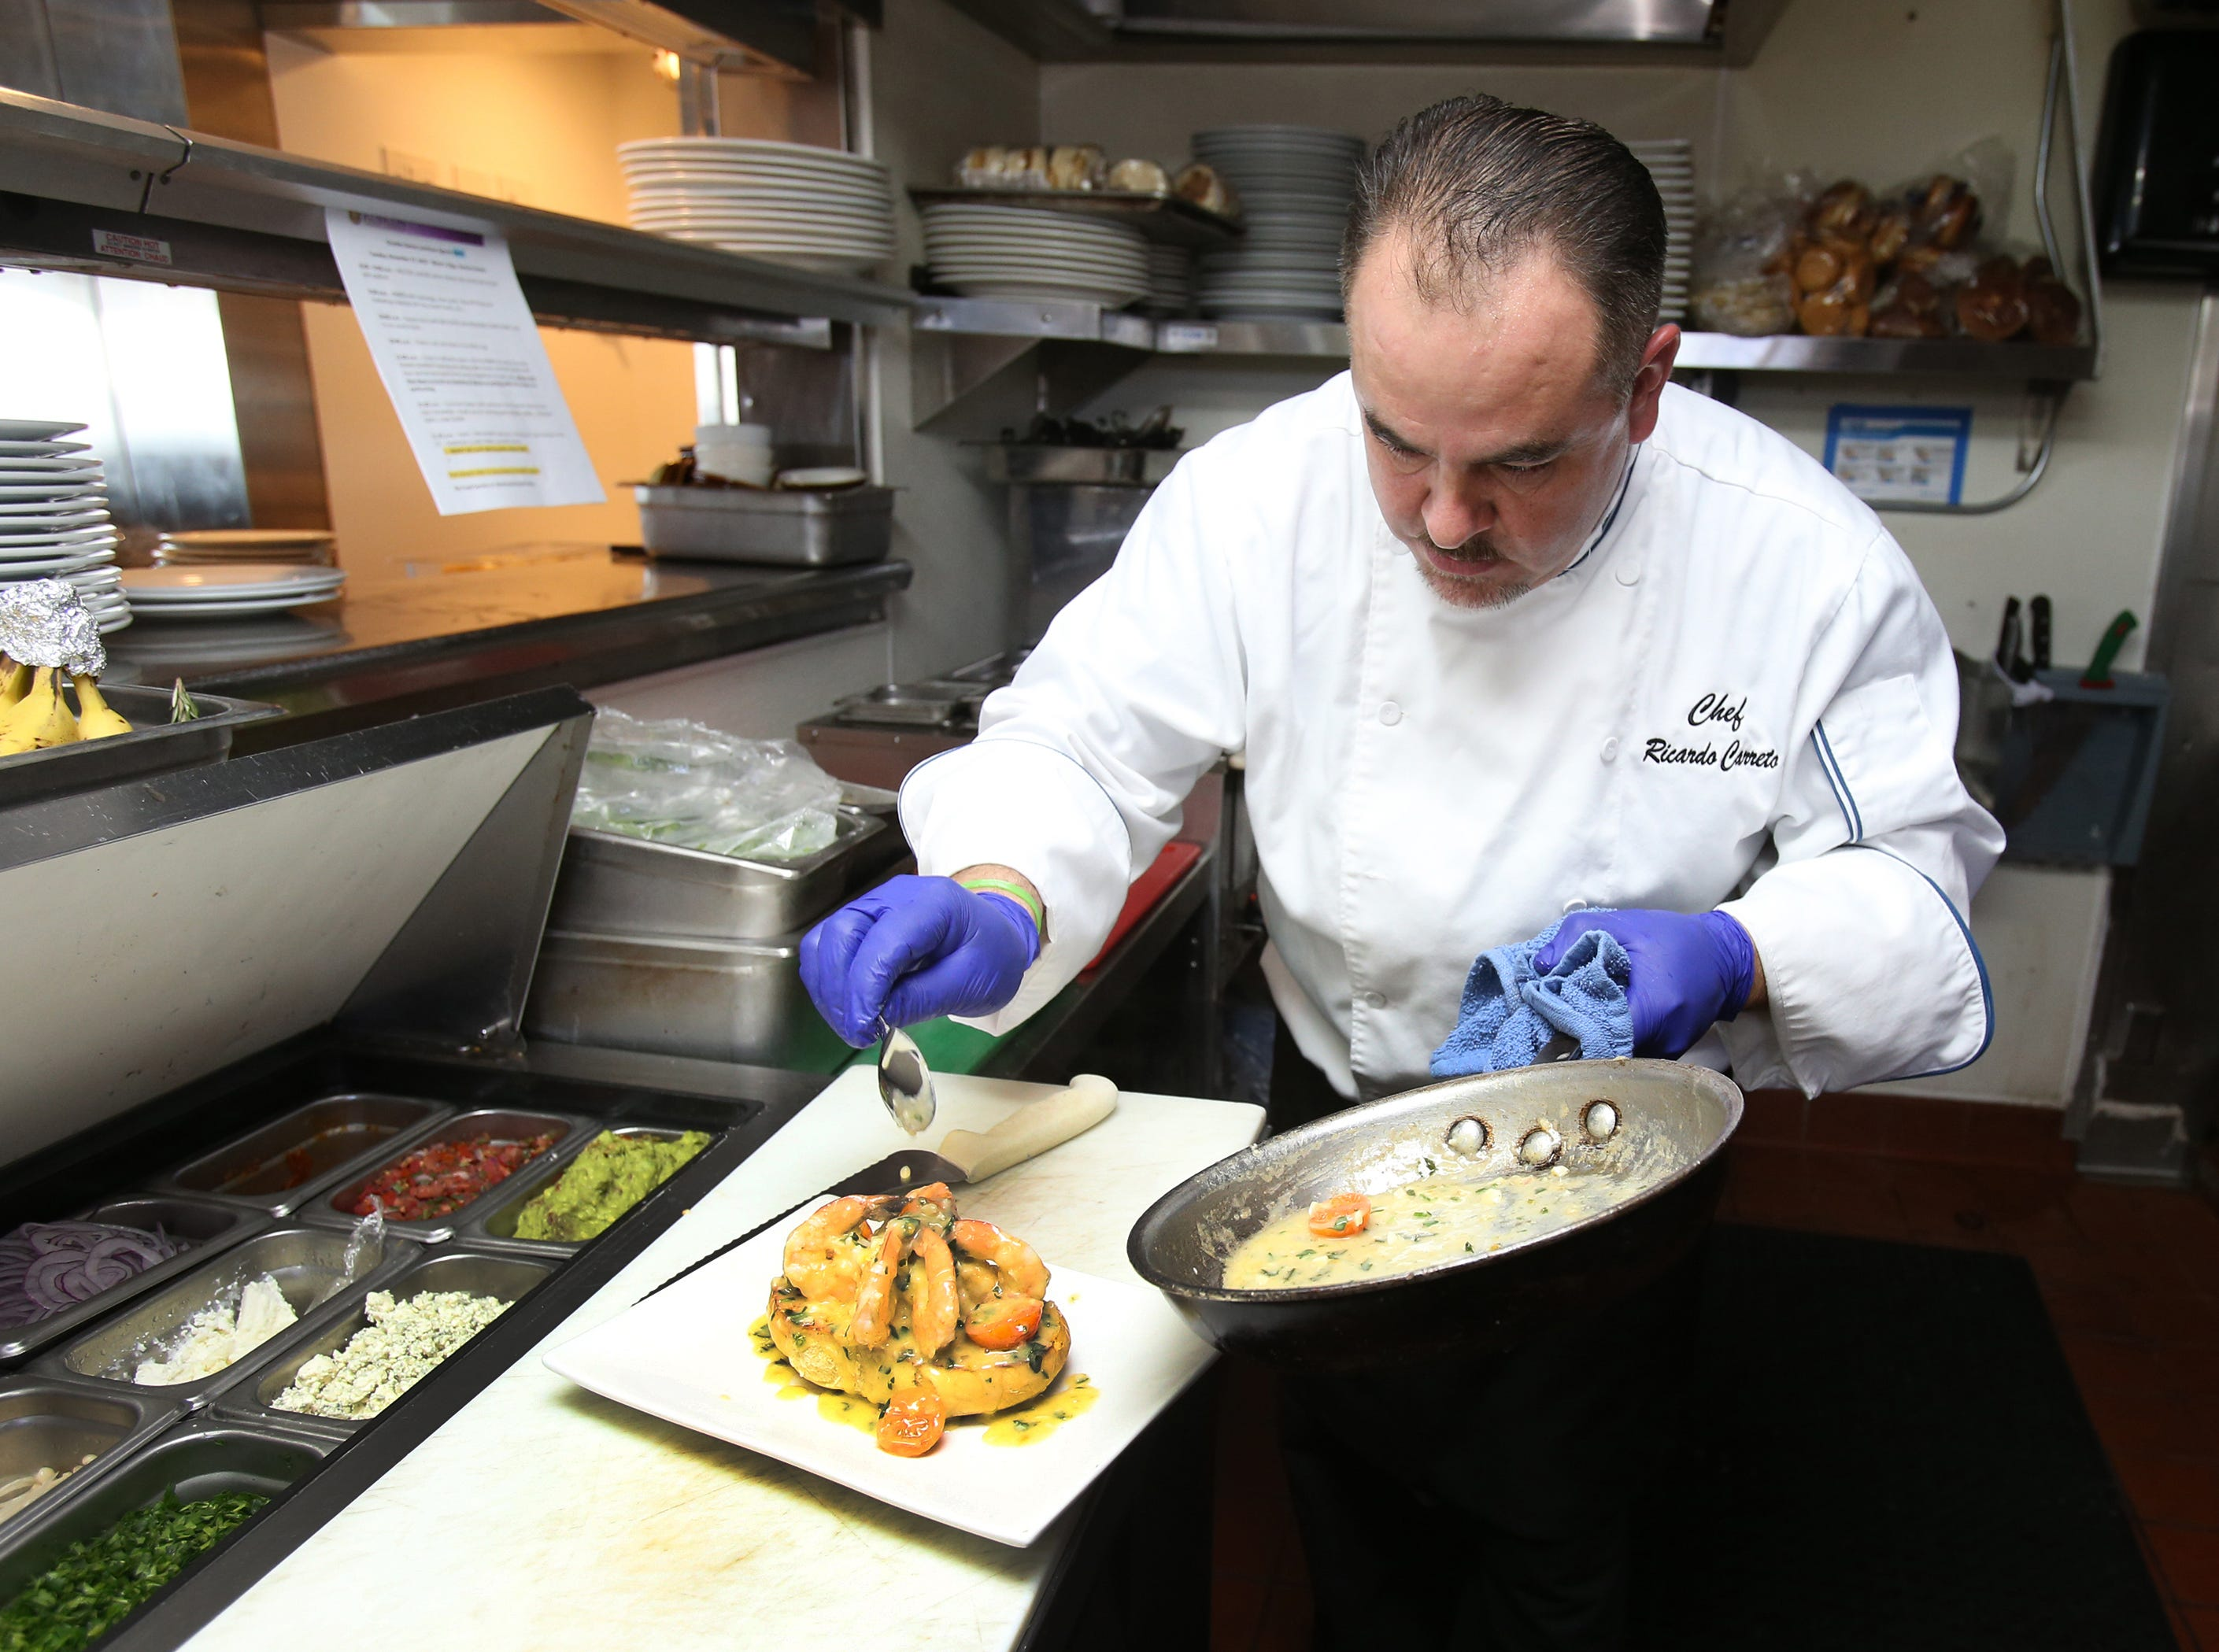 Water's Edge Restaurant and Bar's Executive Chef Ricardo Carreto puts the final touches on his Garlic Shrimp Boat  at the new waterfront restaurant at the Ventura Harbor.